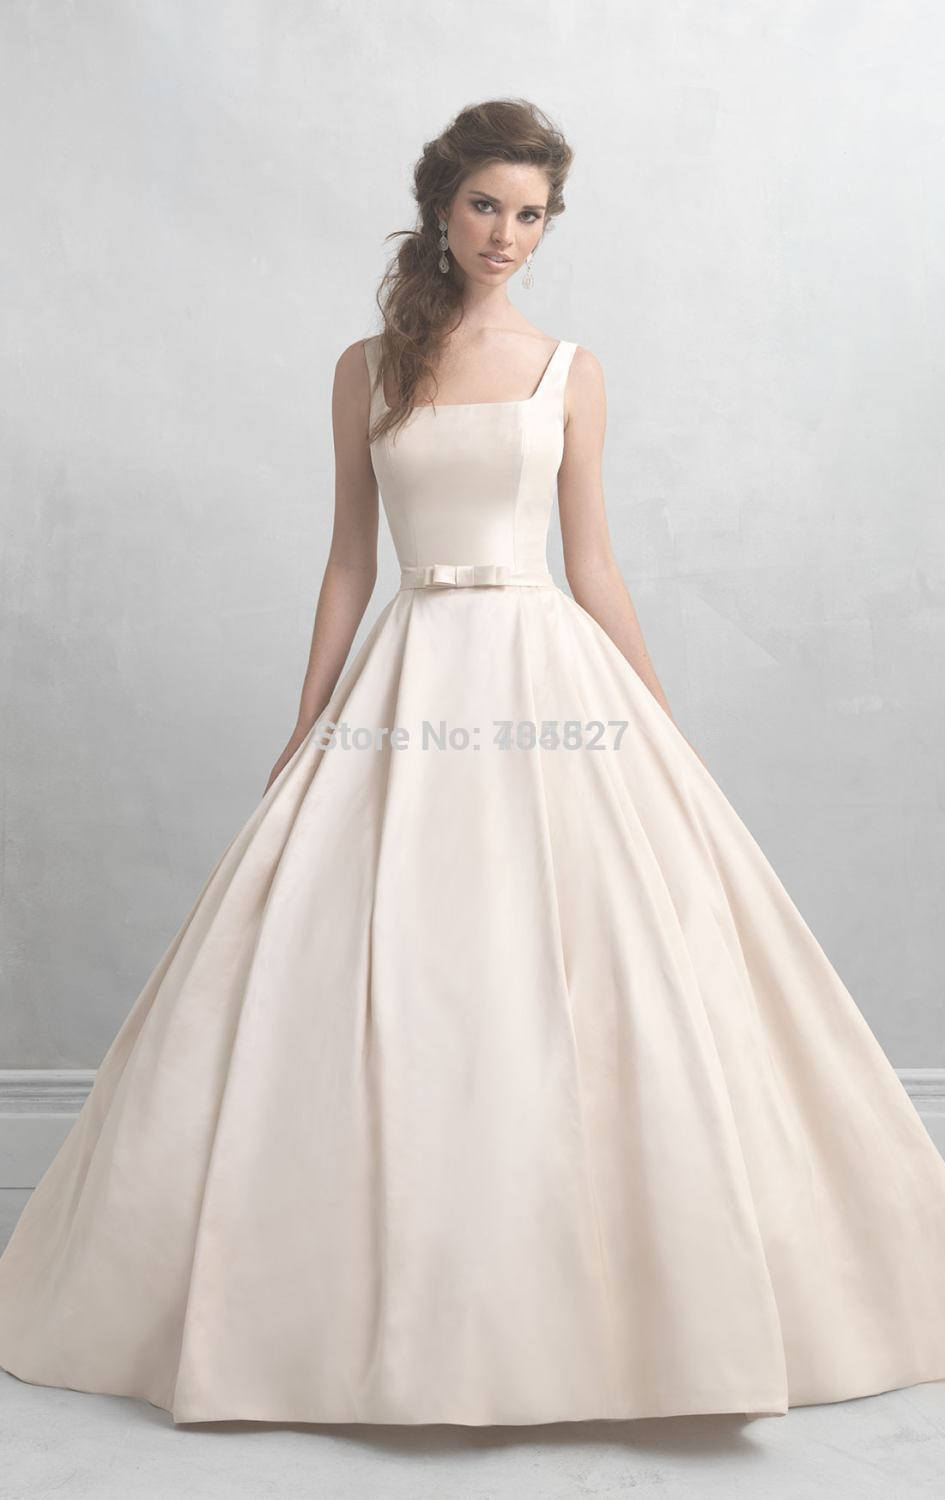 Nitree Timeless Wedding Dresses 2016 Ball Gown Square Bow Sash ...